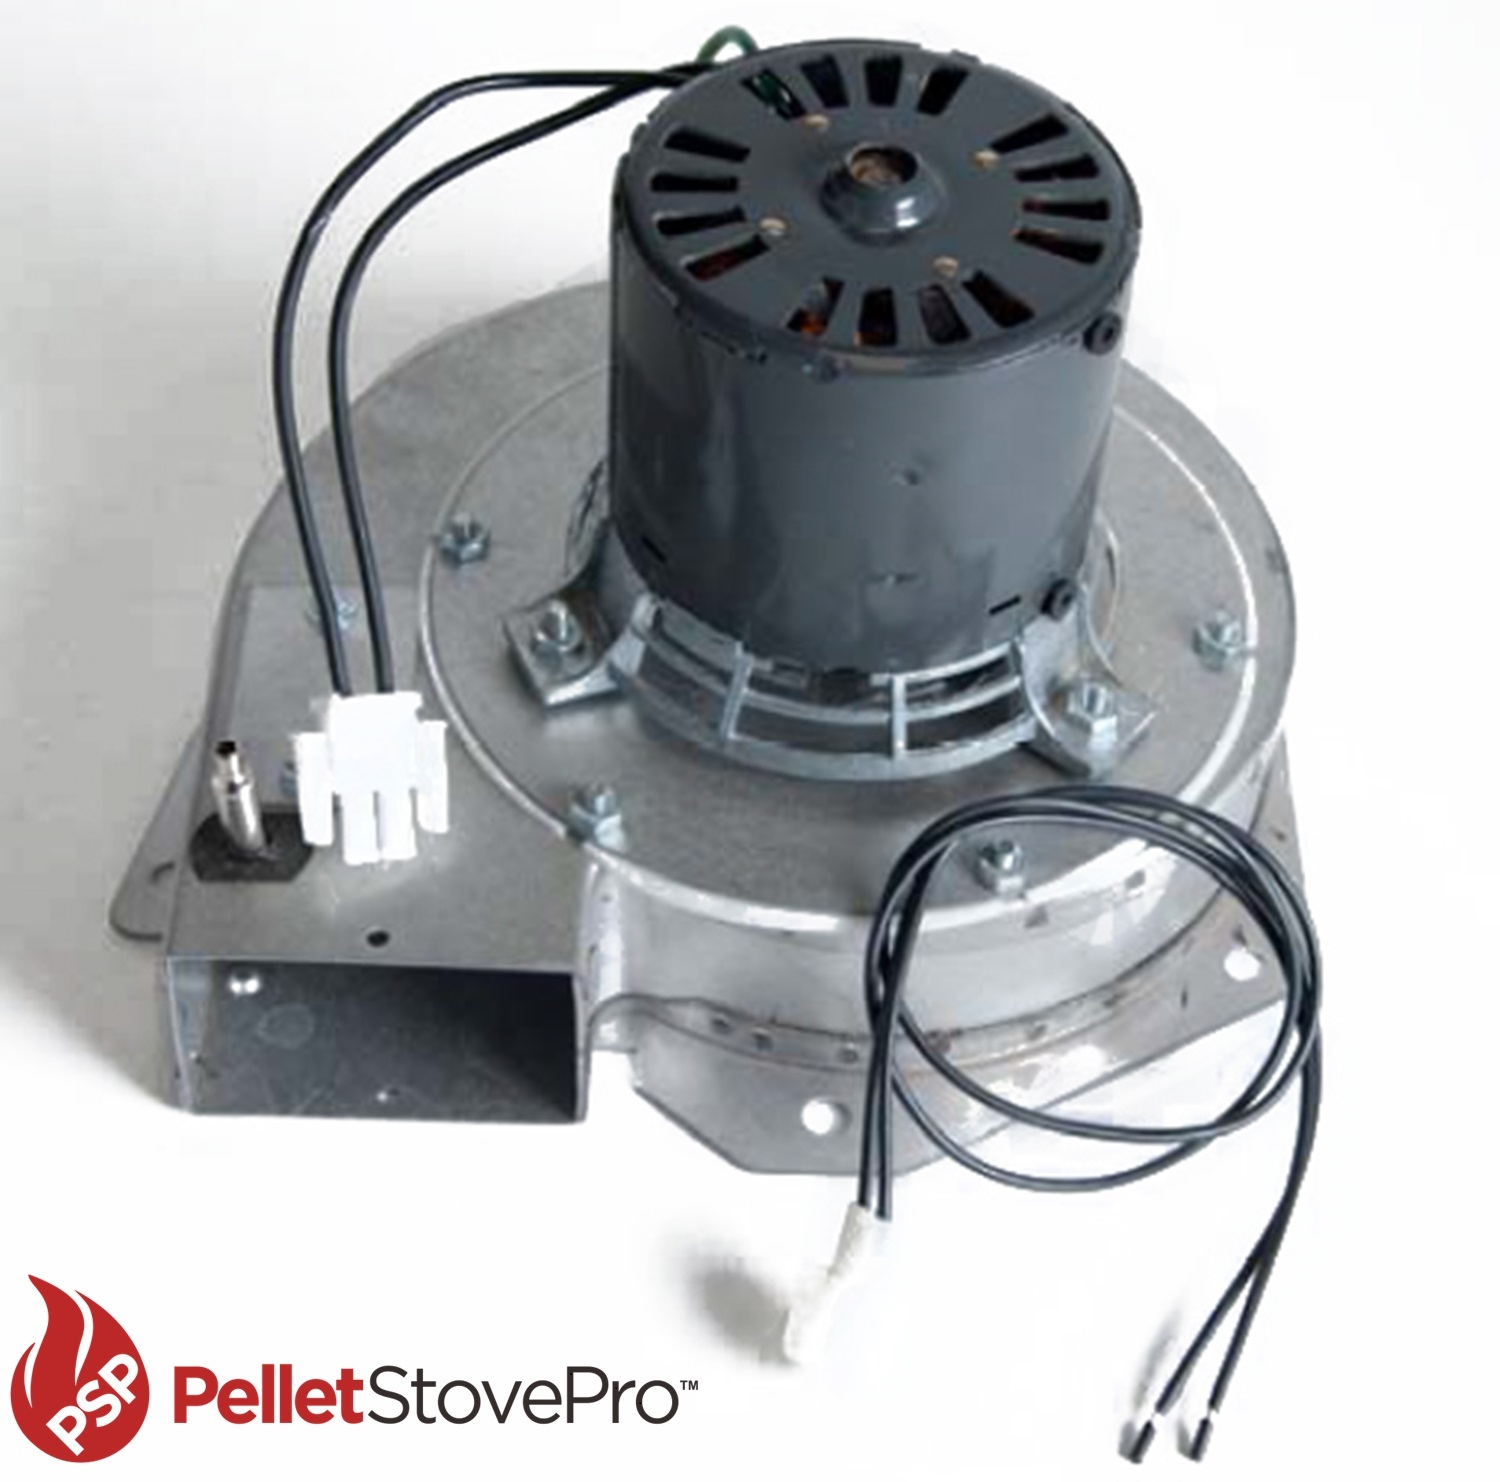 PelPro Pel Pro Pellet Stove Exhaust Motor Blower w/ Housing - 10-1113 on pellet stove heat recovery, pellet stove how it works, pellet stove thermostat wiring, pellet stove control panel, pellet stove maintenance, pellet stove fuses, pellet stove installation, pellet stove inserts, pellet stove igniter, pellet stoves how they work, pellet stove pellets, pellet stove window unit, pellet burning stoves function diagrams, gas stove wiring diagrams, pellet stove parts, pellet stove exhaust system, pellet stove troubleshooting, pellet stove layouts, pellet stove dimensions, pellet stoves in-house,